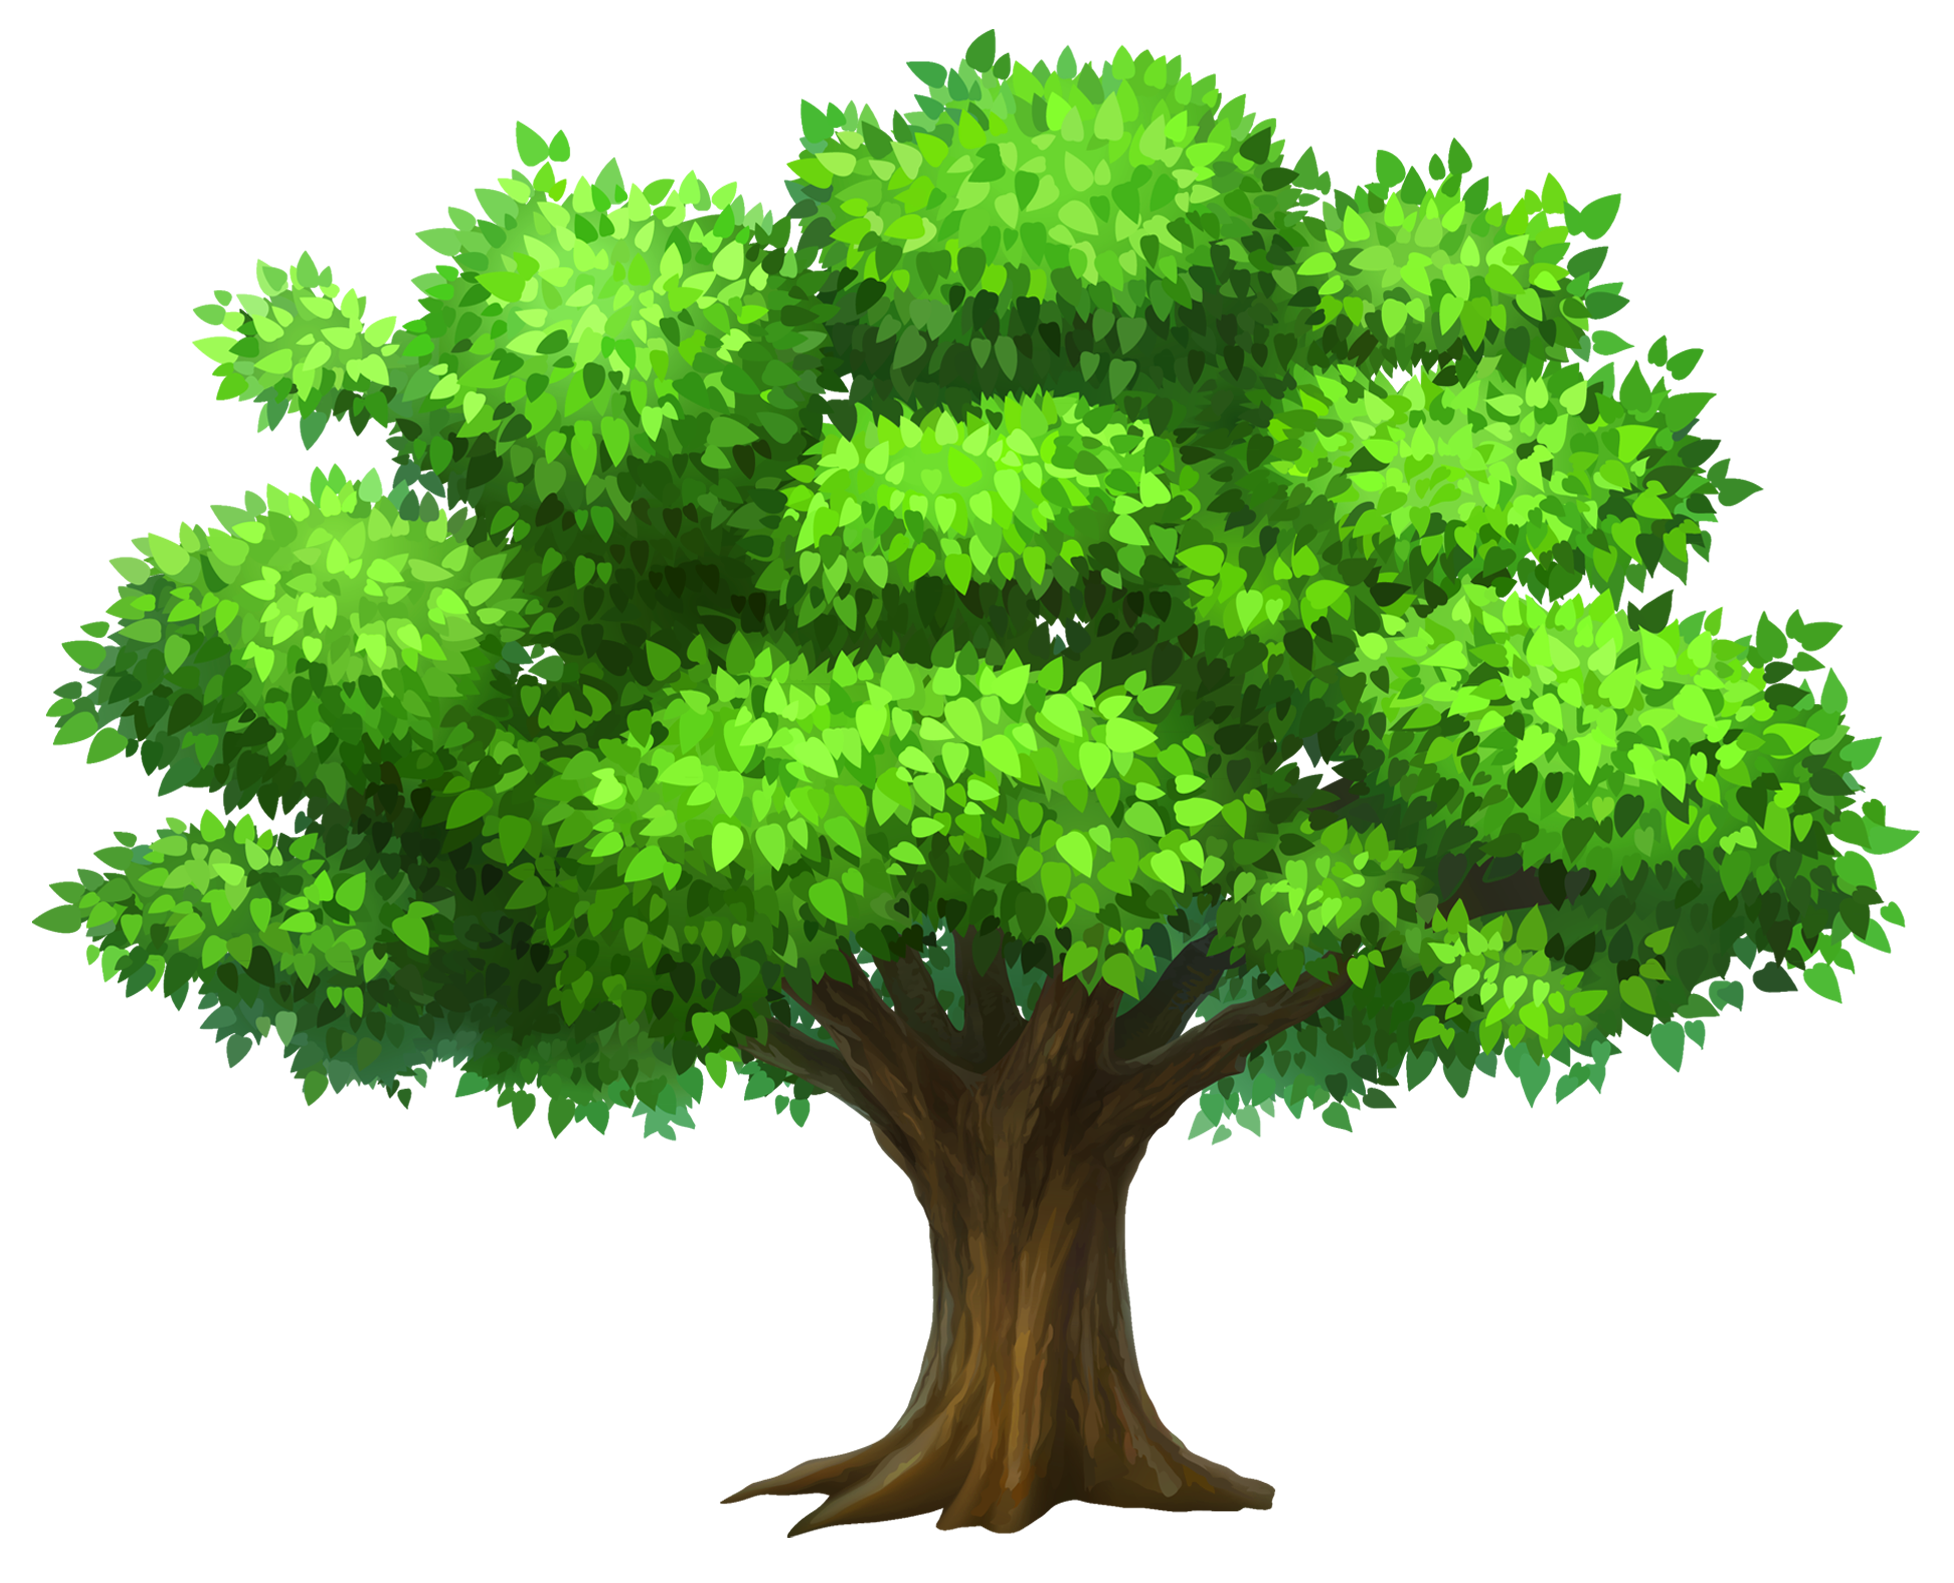 Bare Tree Clipart Free Clipart .-Bare Tree Clipart Free Clipart .-1